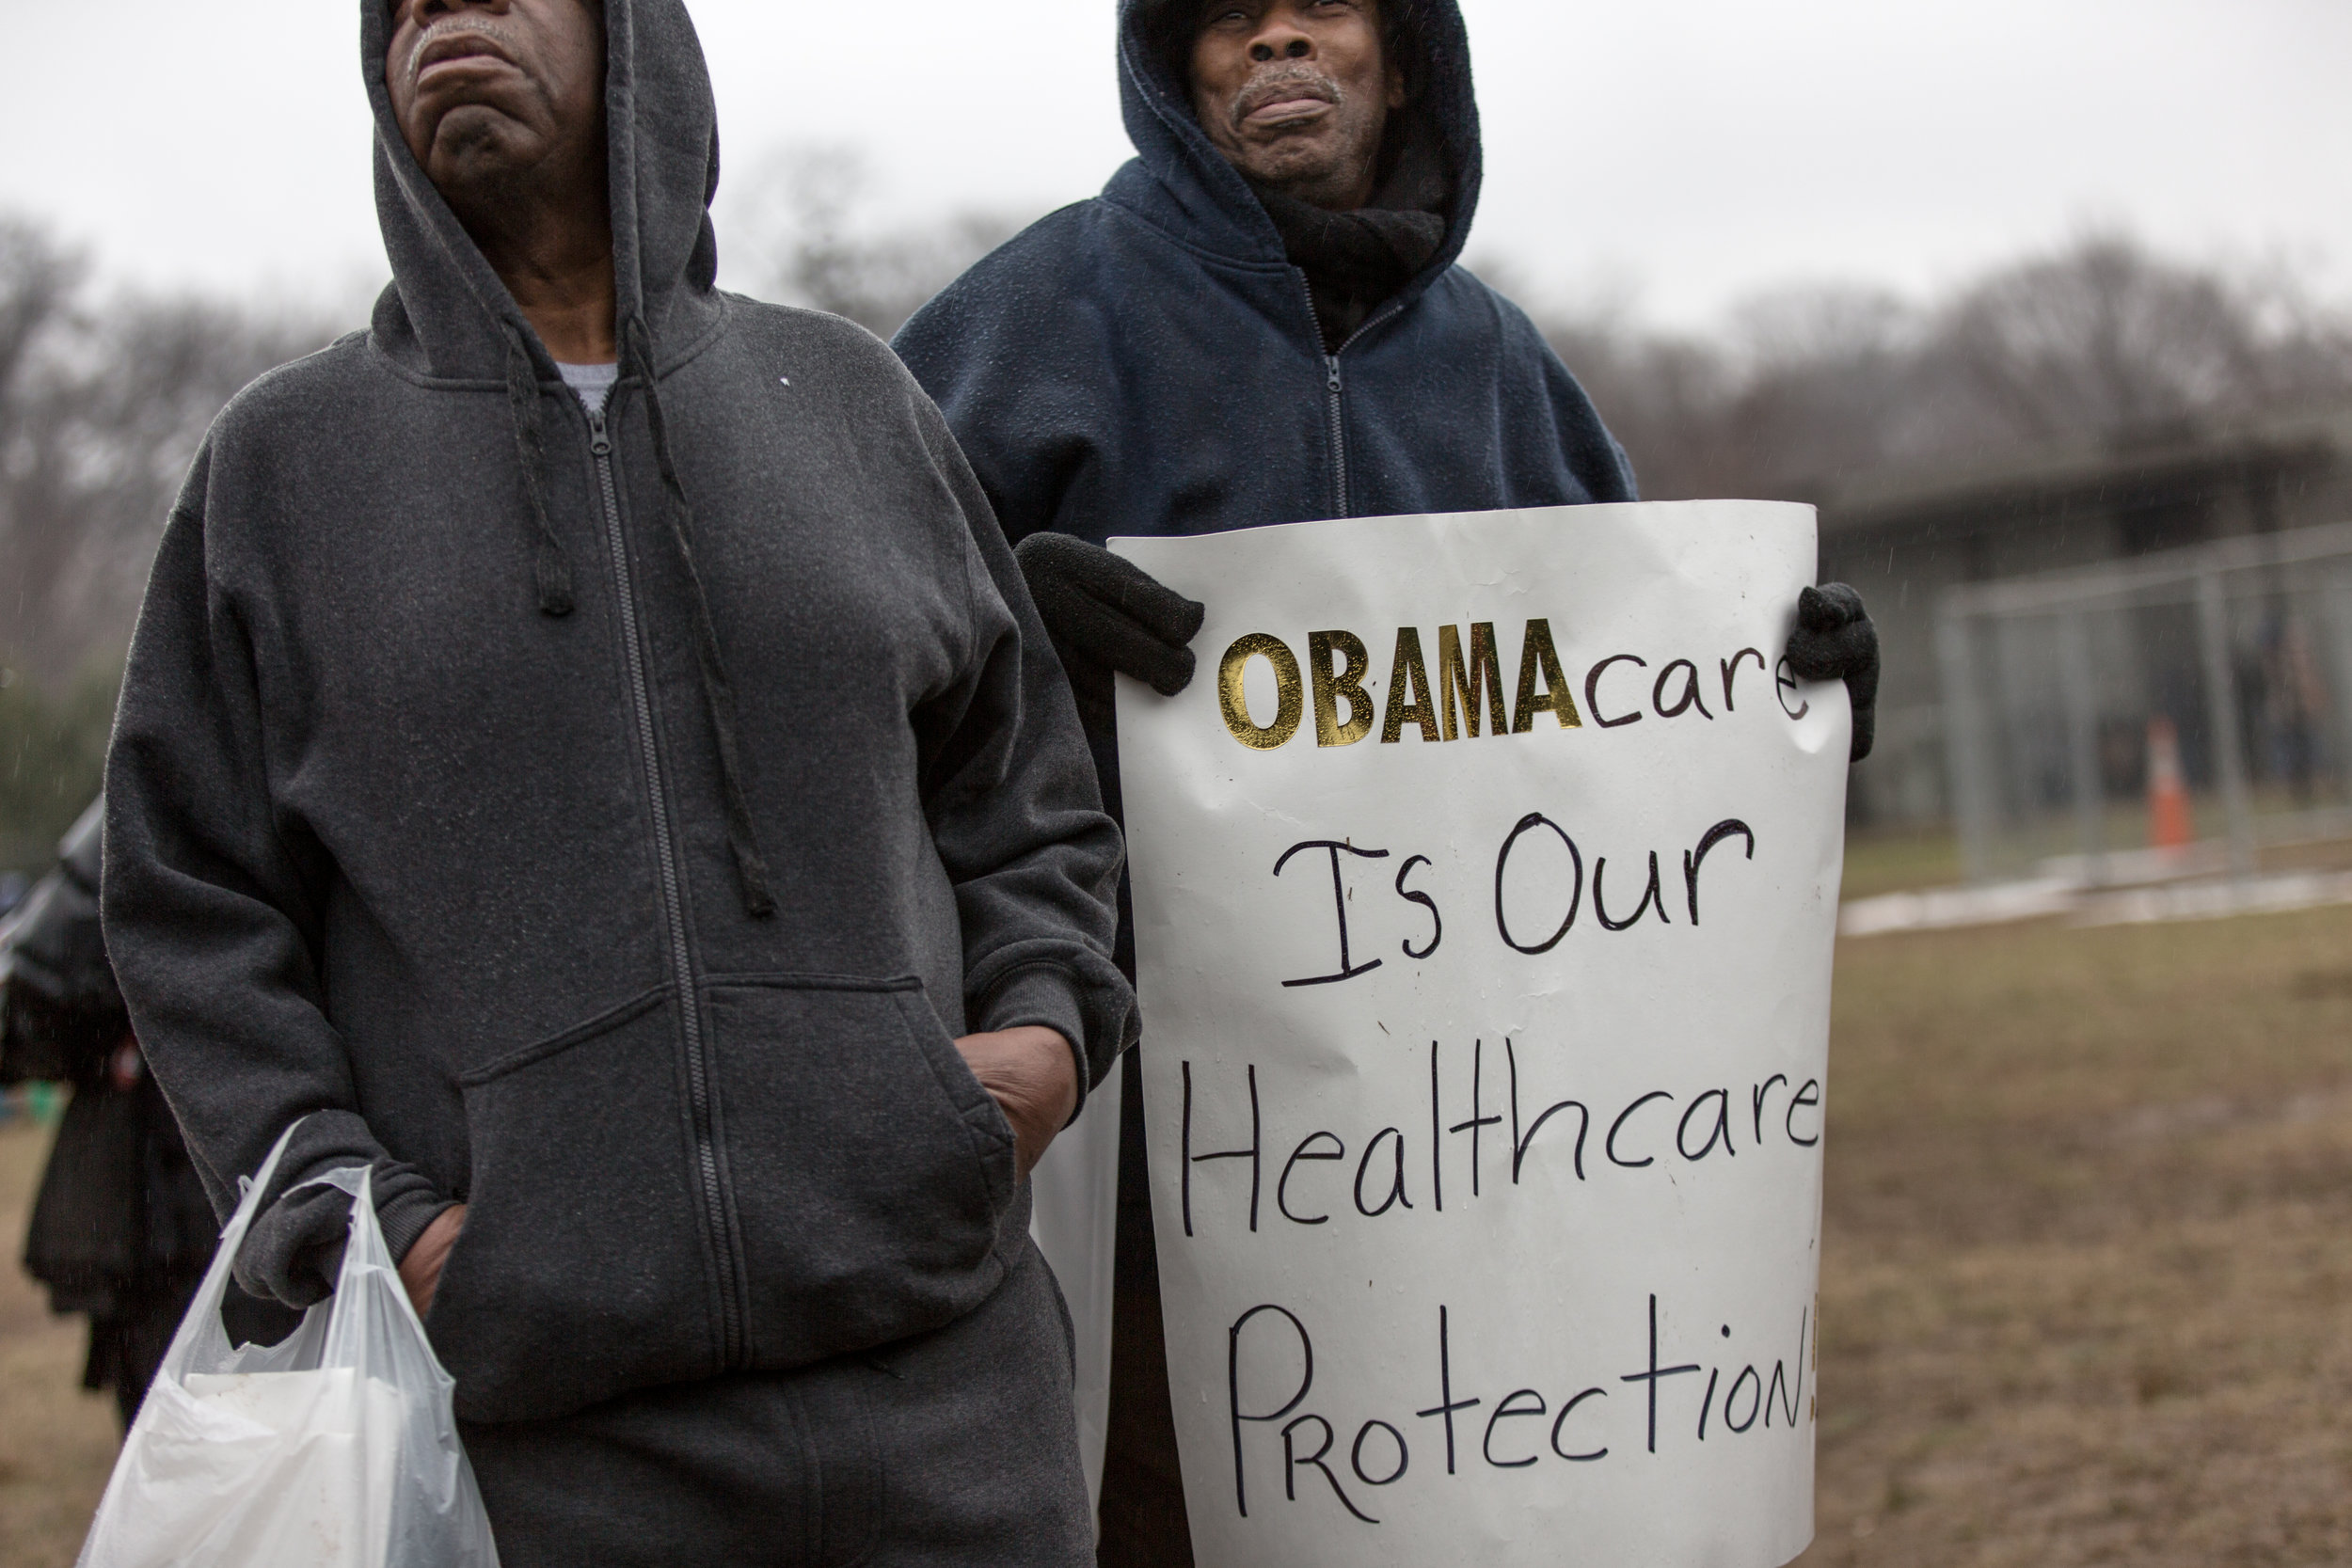 Obamacare is Our Healthcare Protection, We Shall Not Be Moved Rally, Washington DC